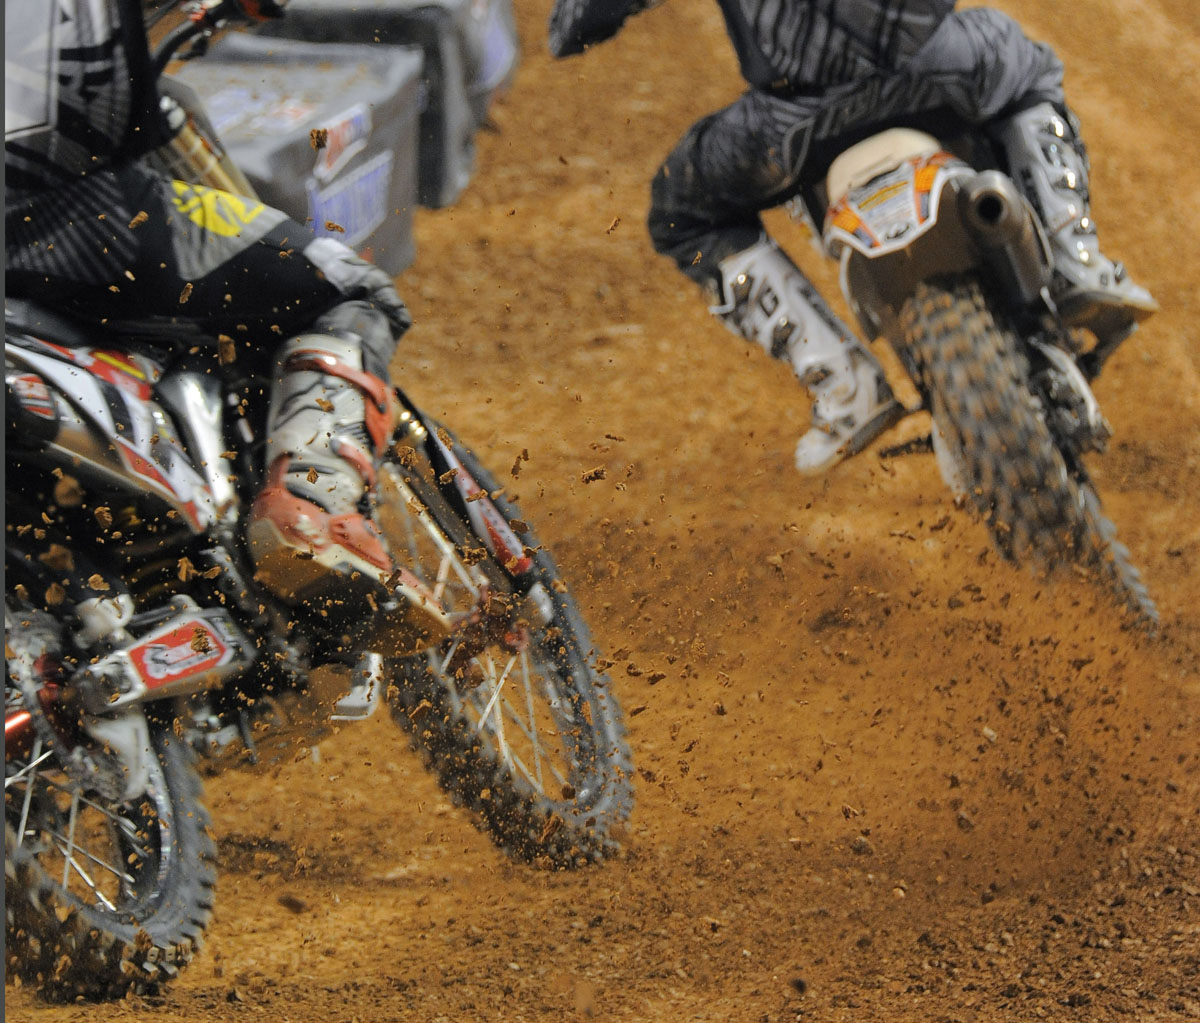 Arenacross dirt bike race speeds into Baltimore Arena